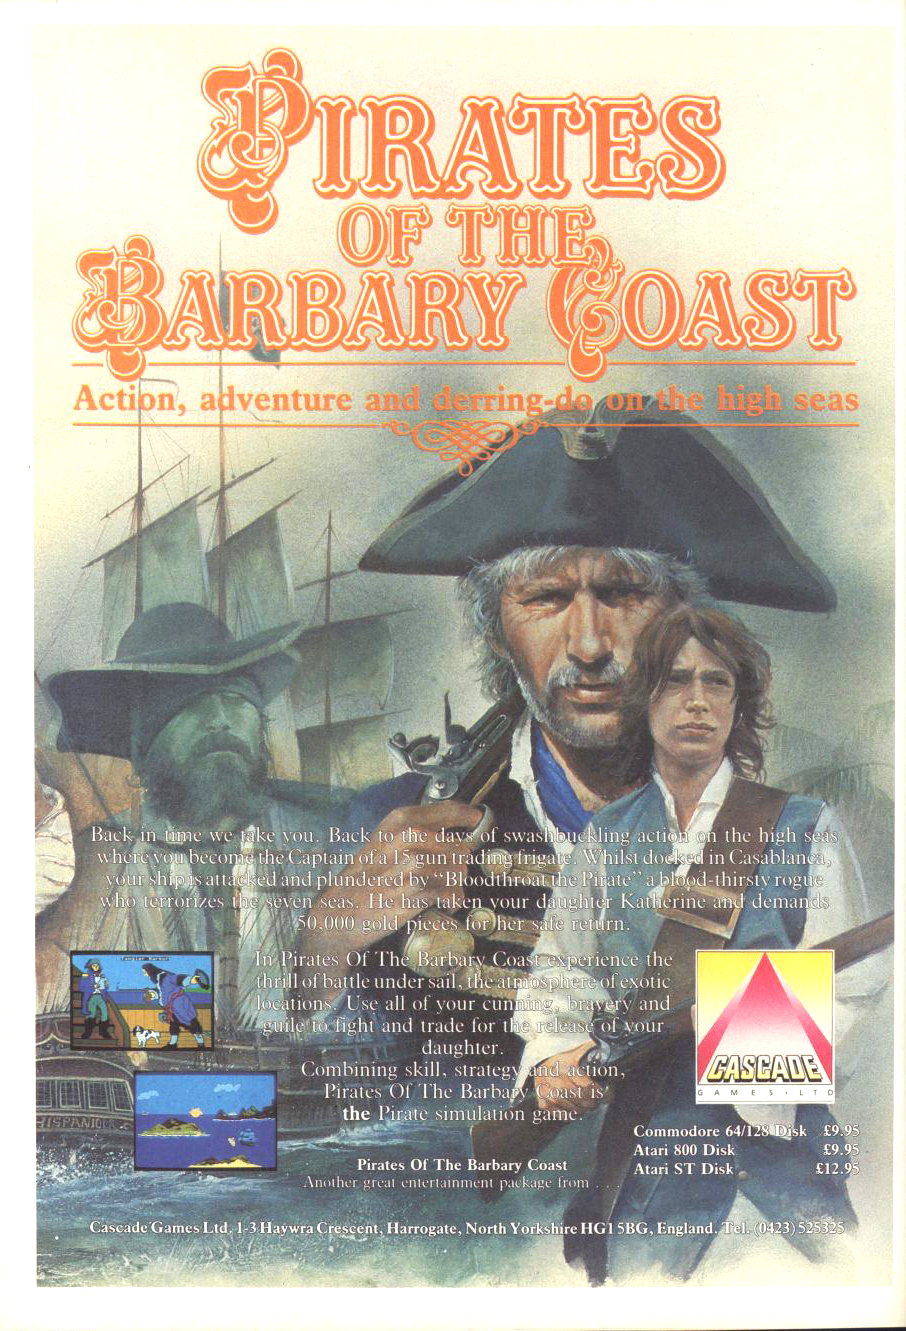 freddy cascades productions